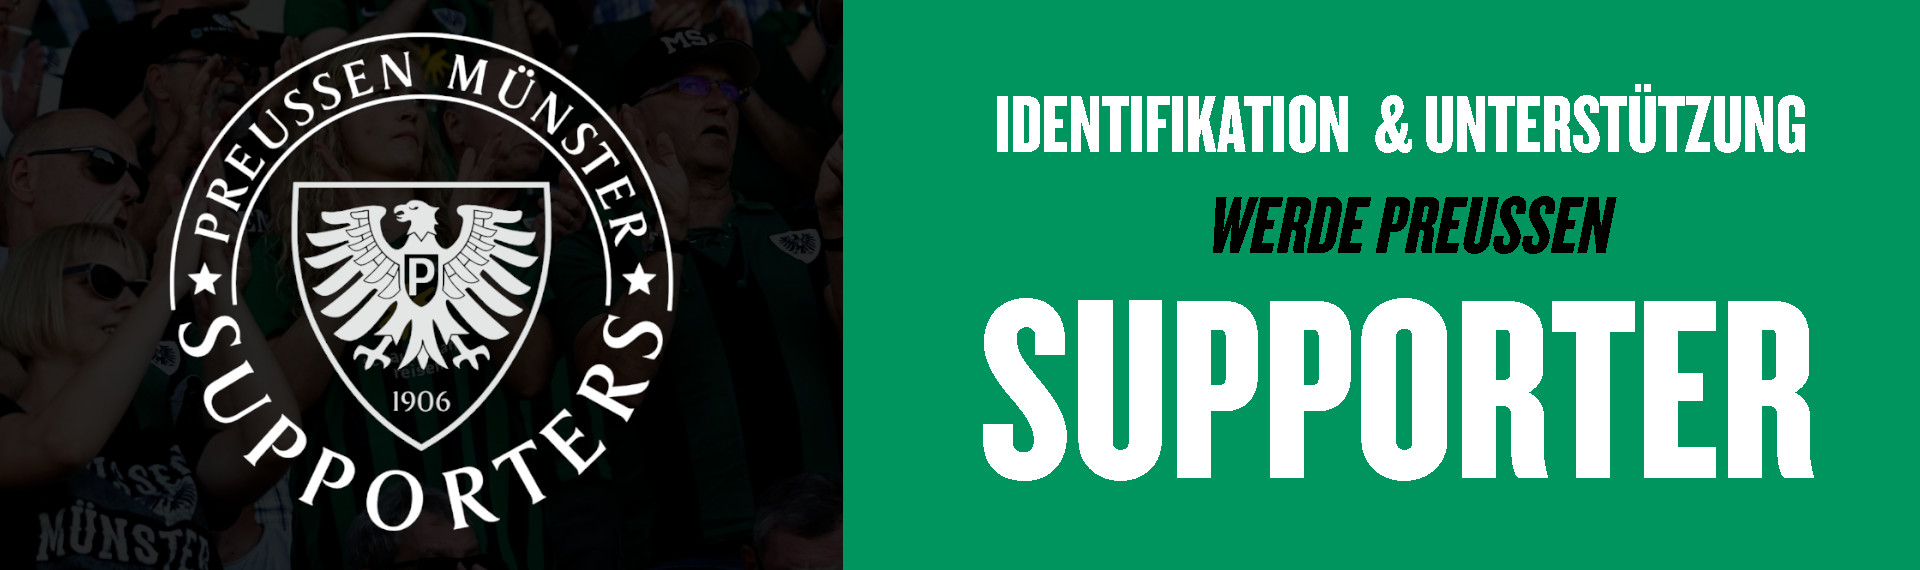 supporters_fanshop_header_1920_x_570.png